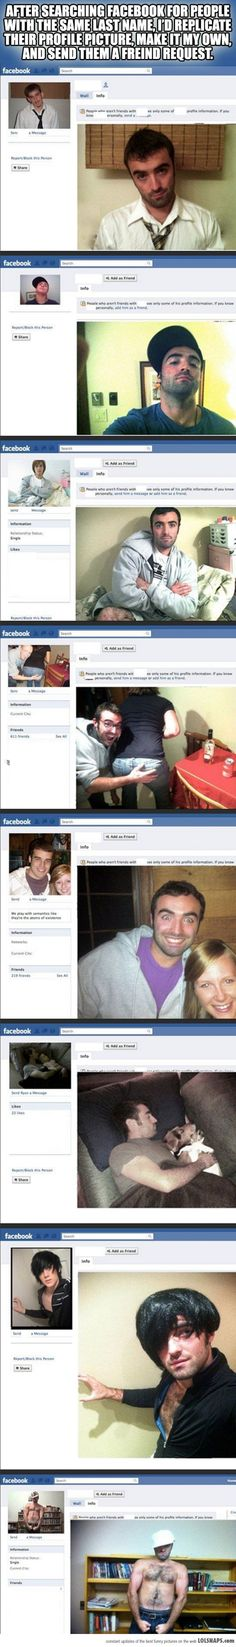 Epic Facebook Troll is Epic!